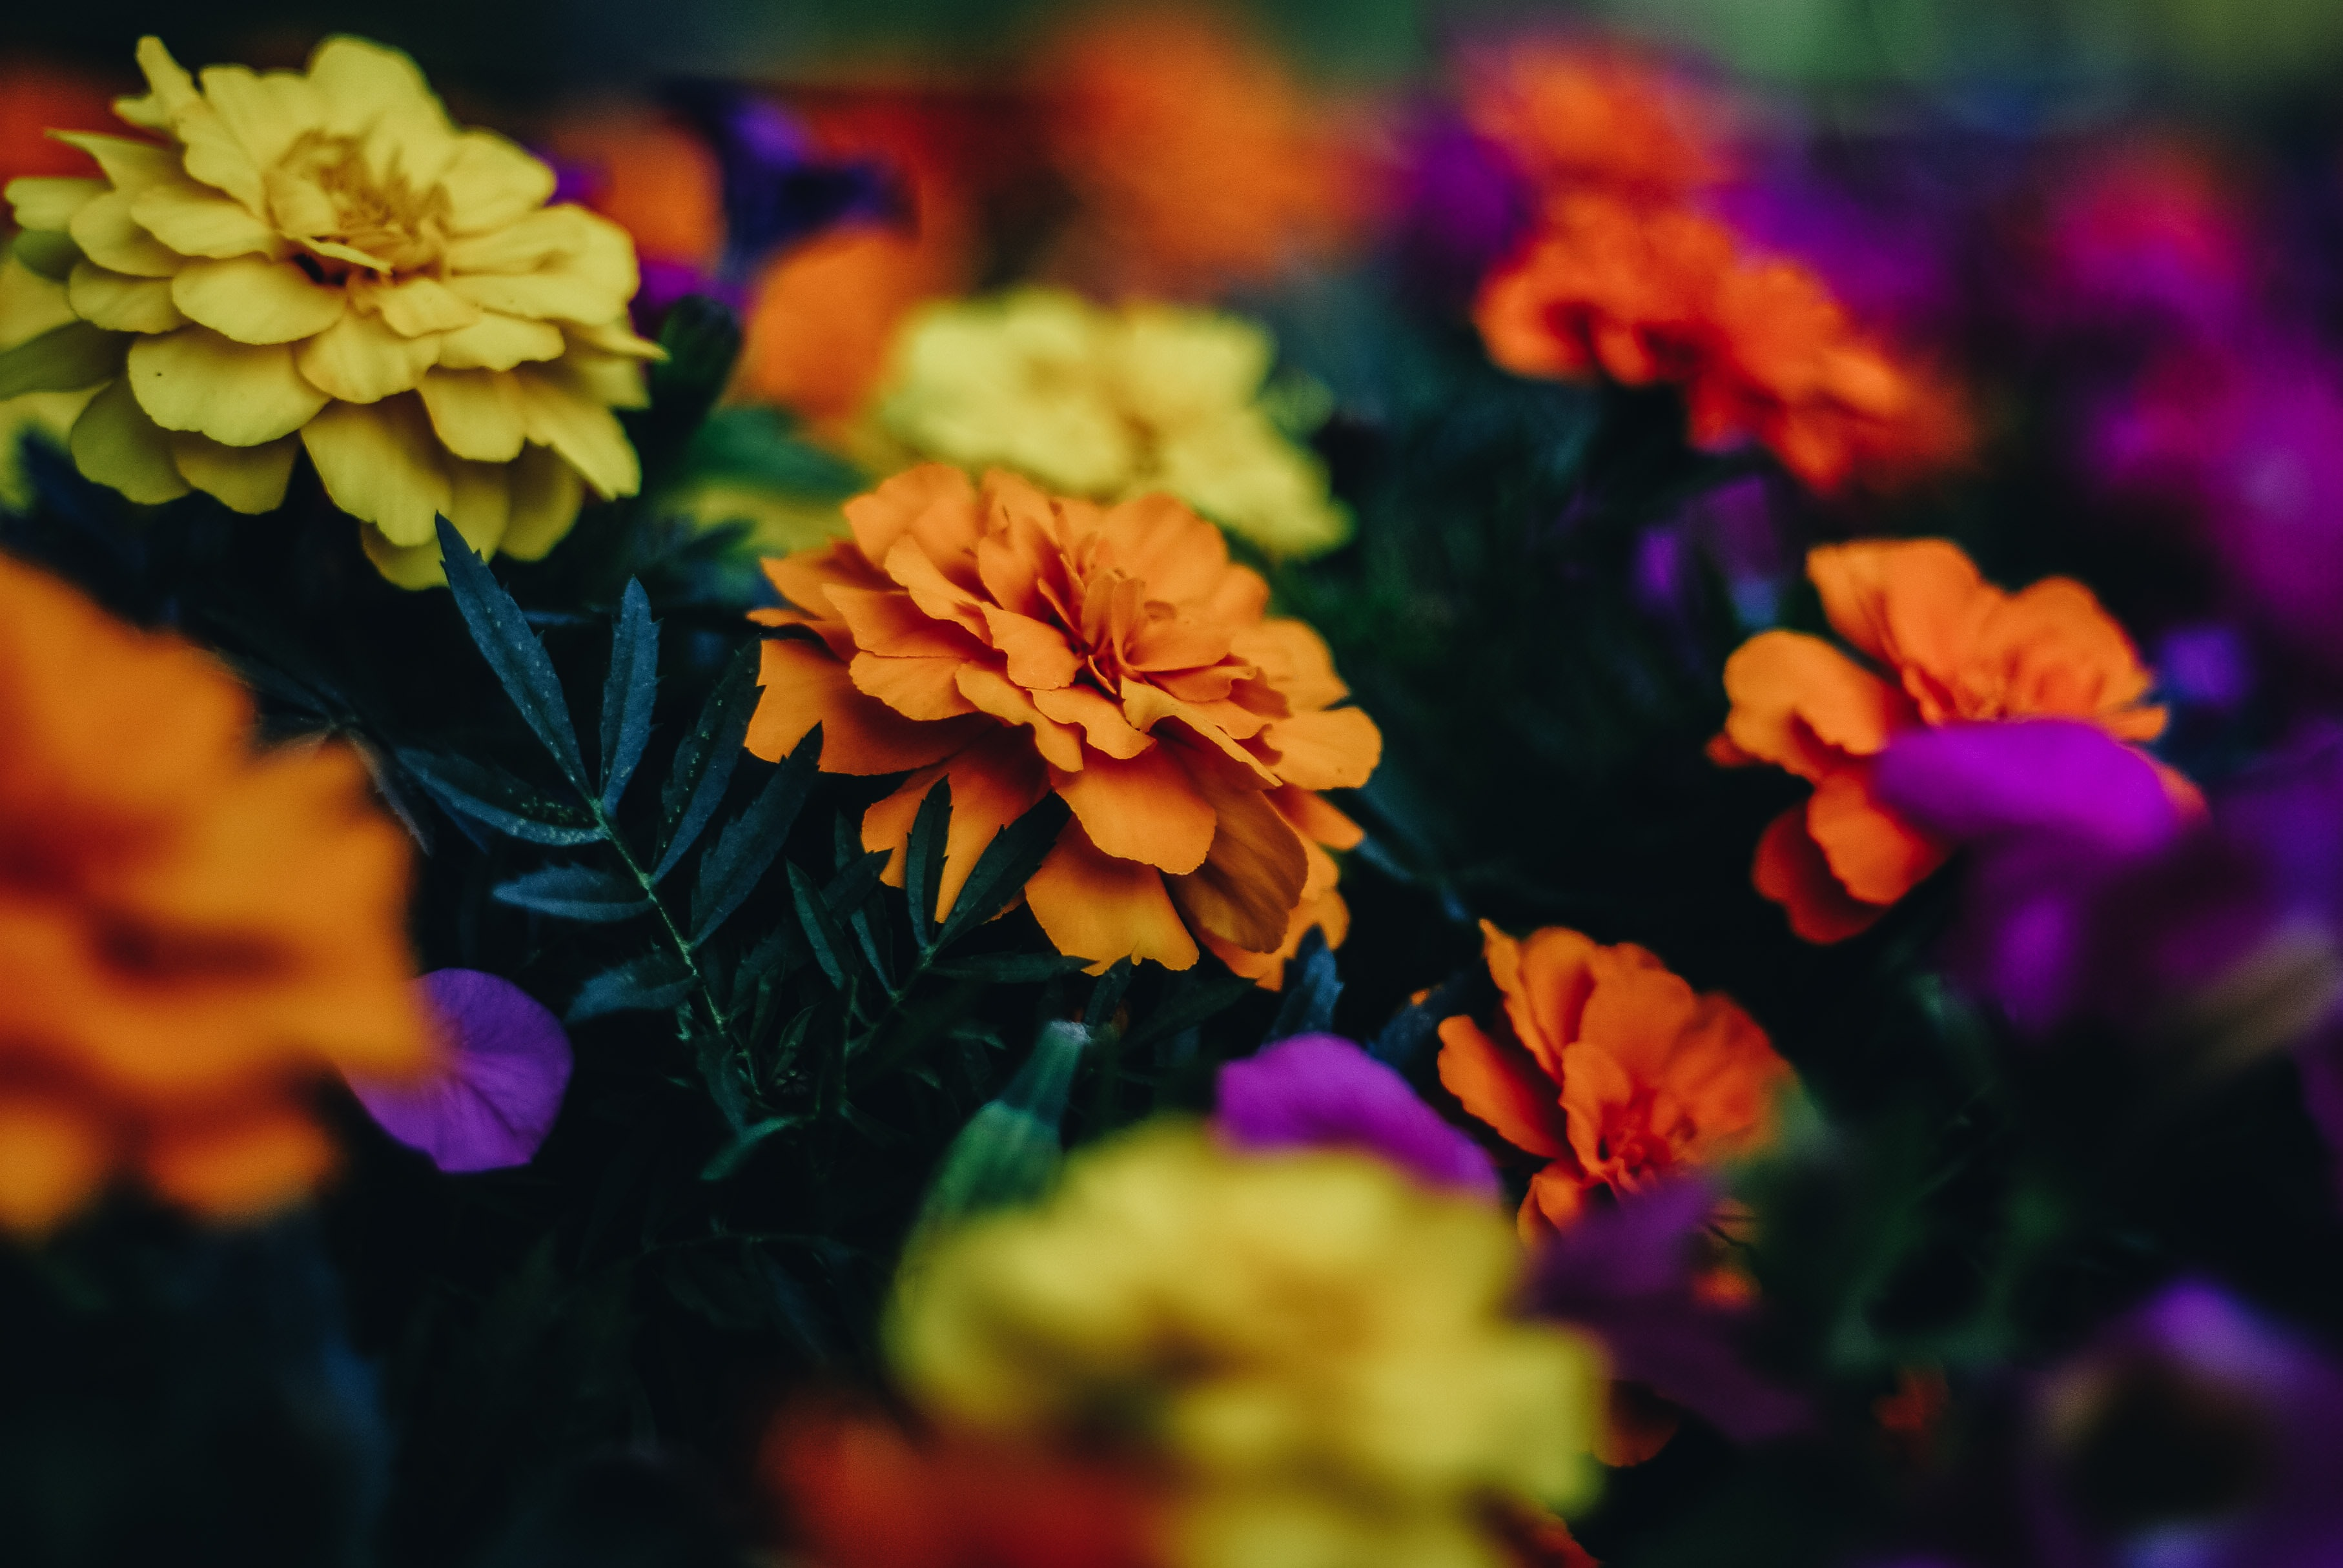 closeup photo of yellow and orange petaled flowers